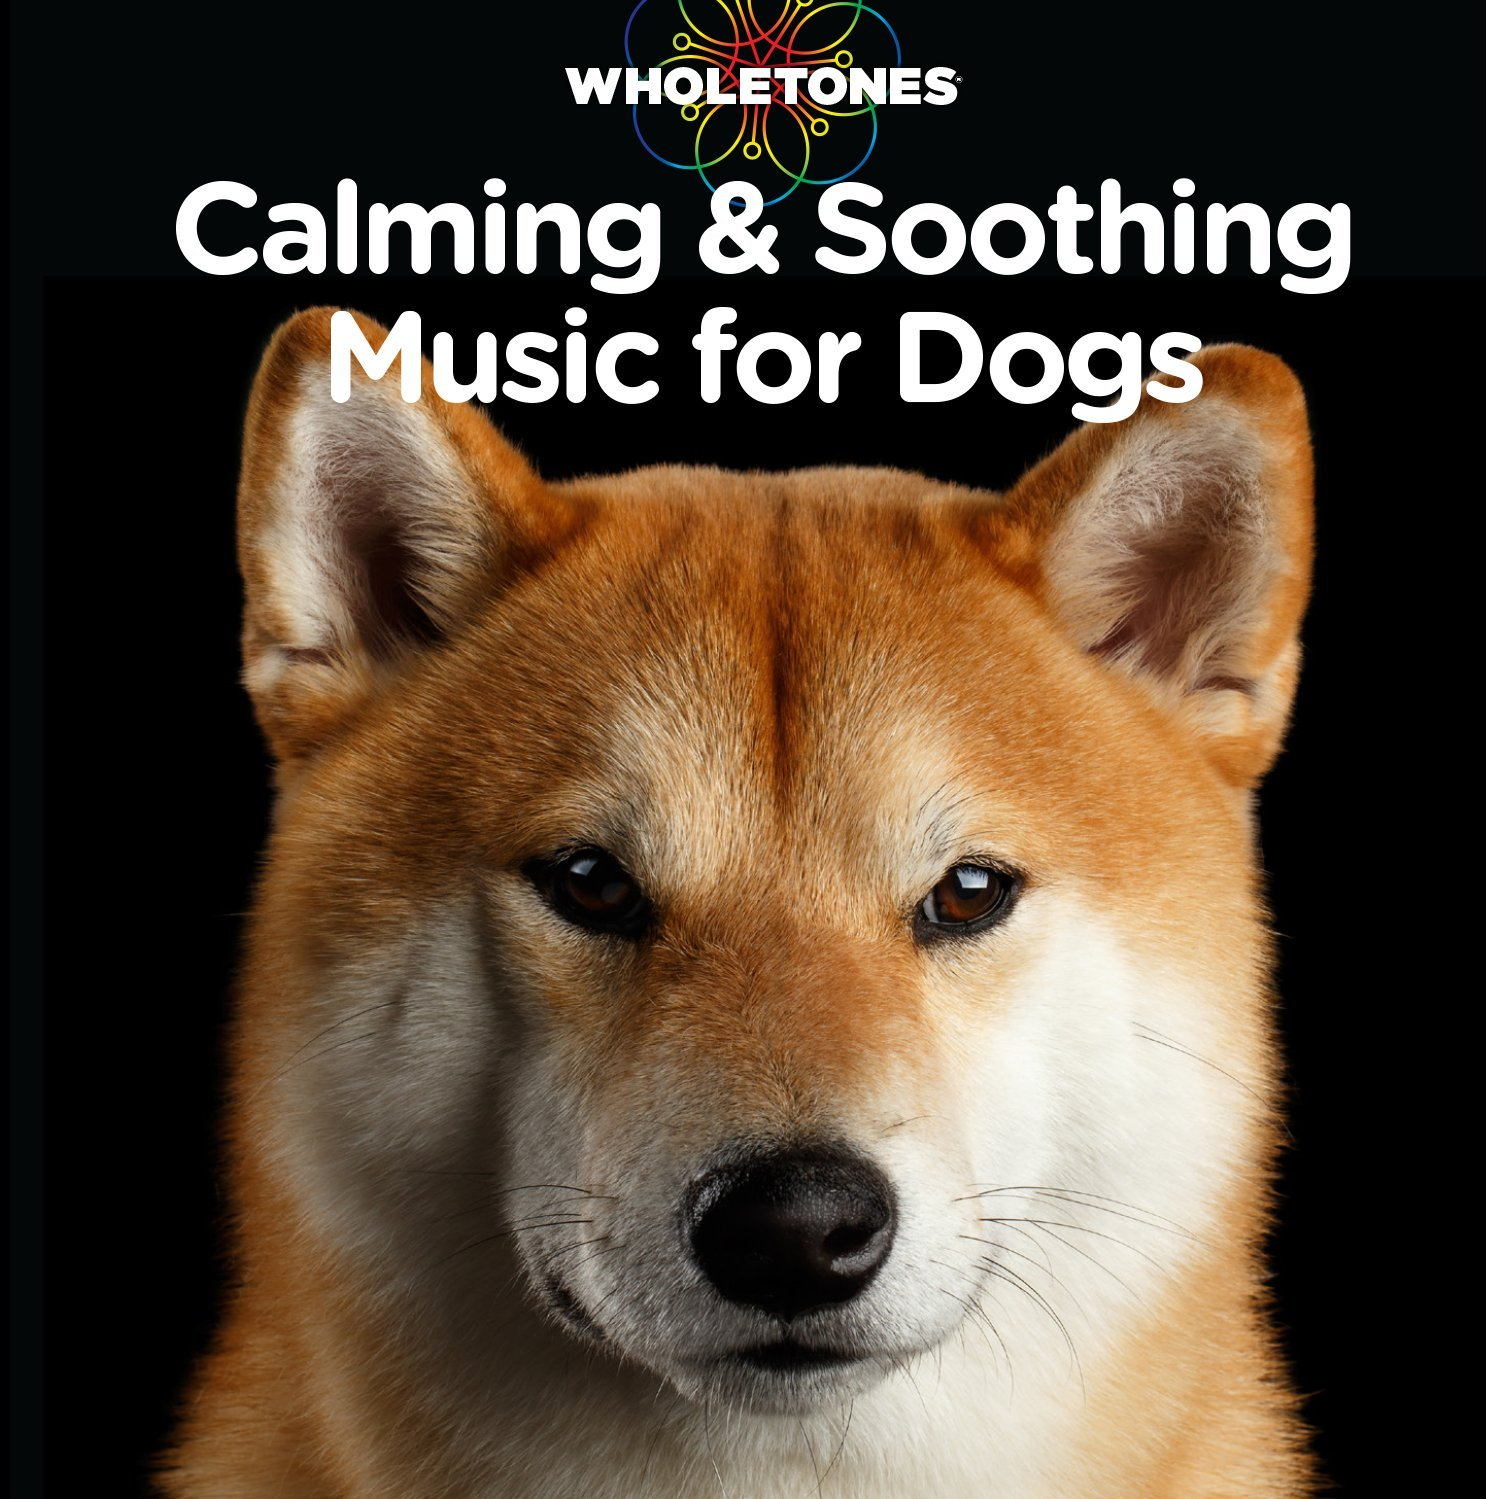 Wholetones: Calming & Soothing Music for Dogs by Wholetones